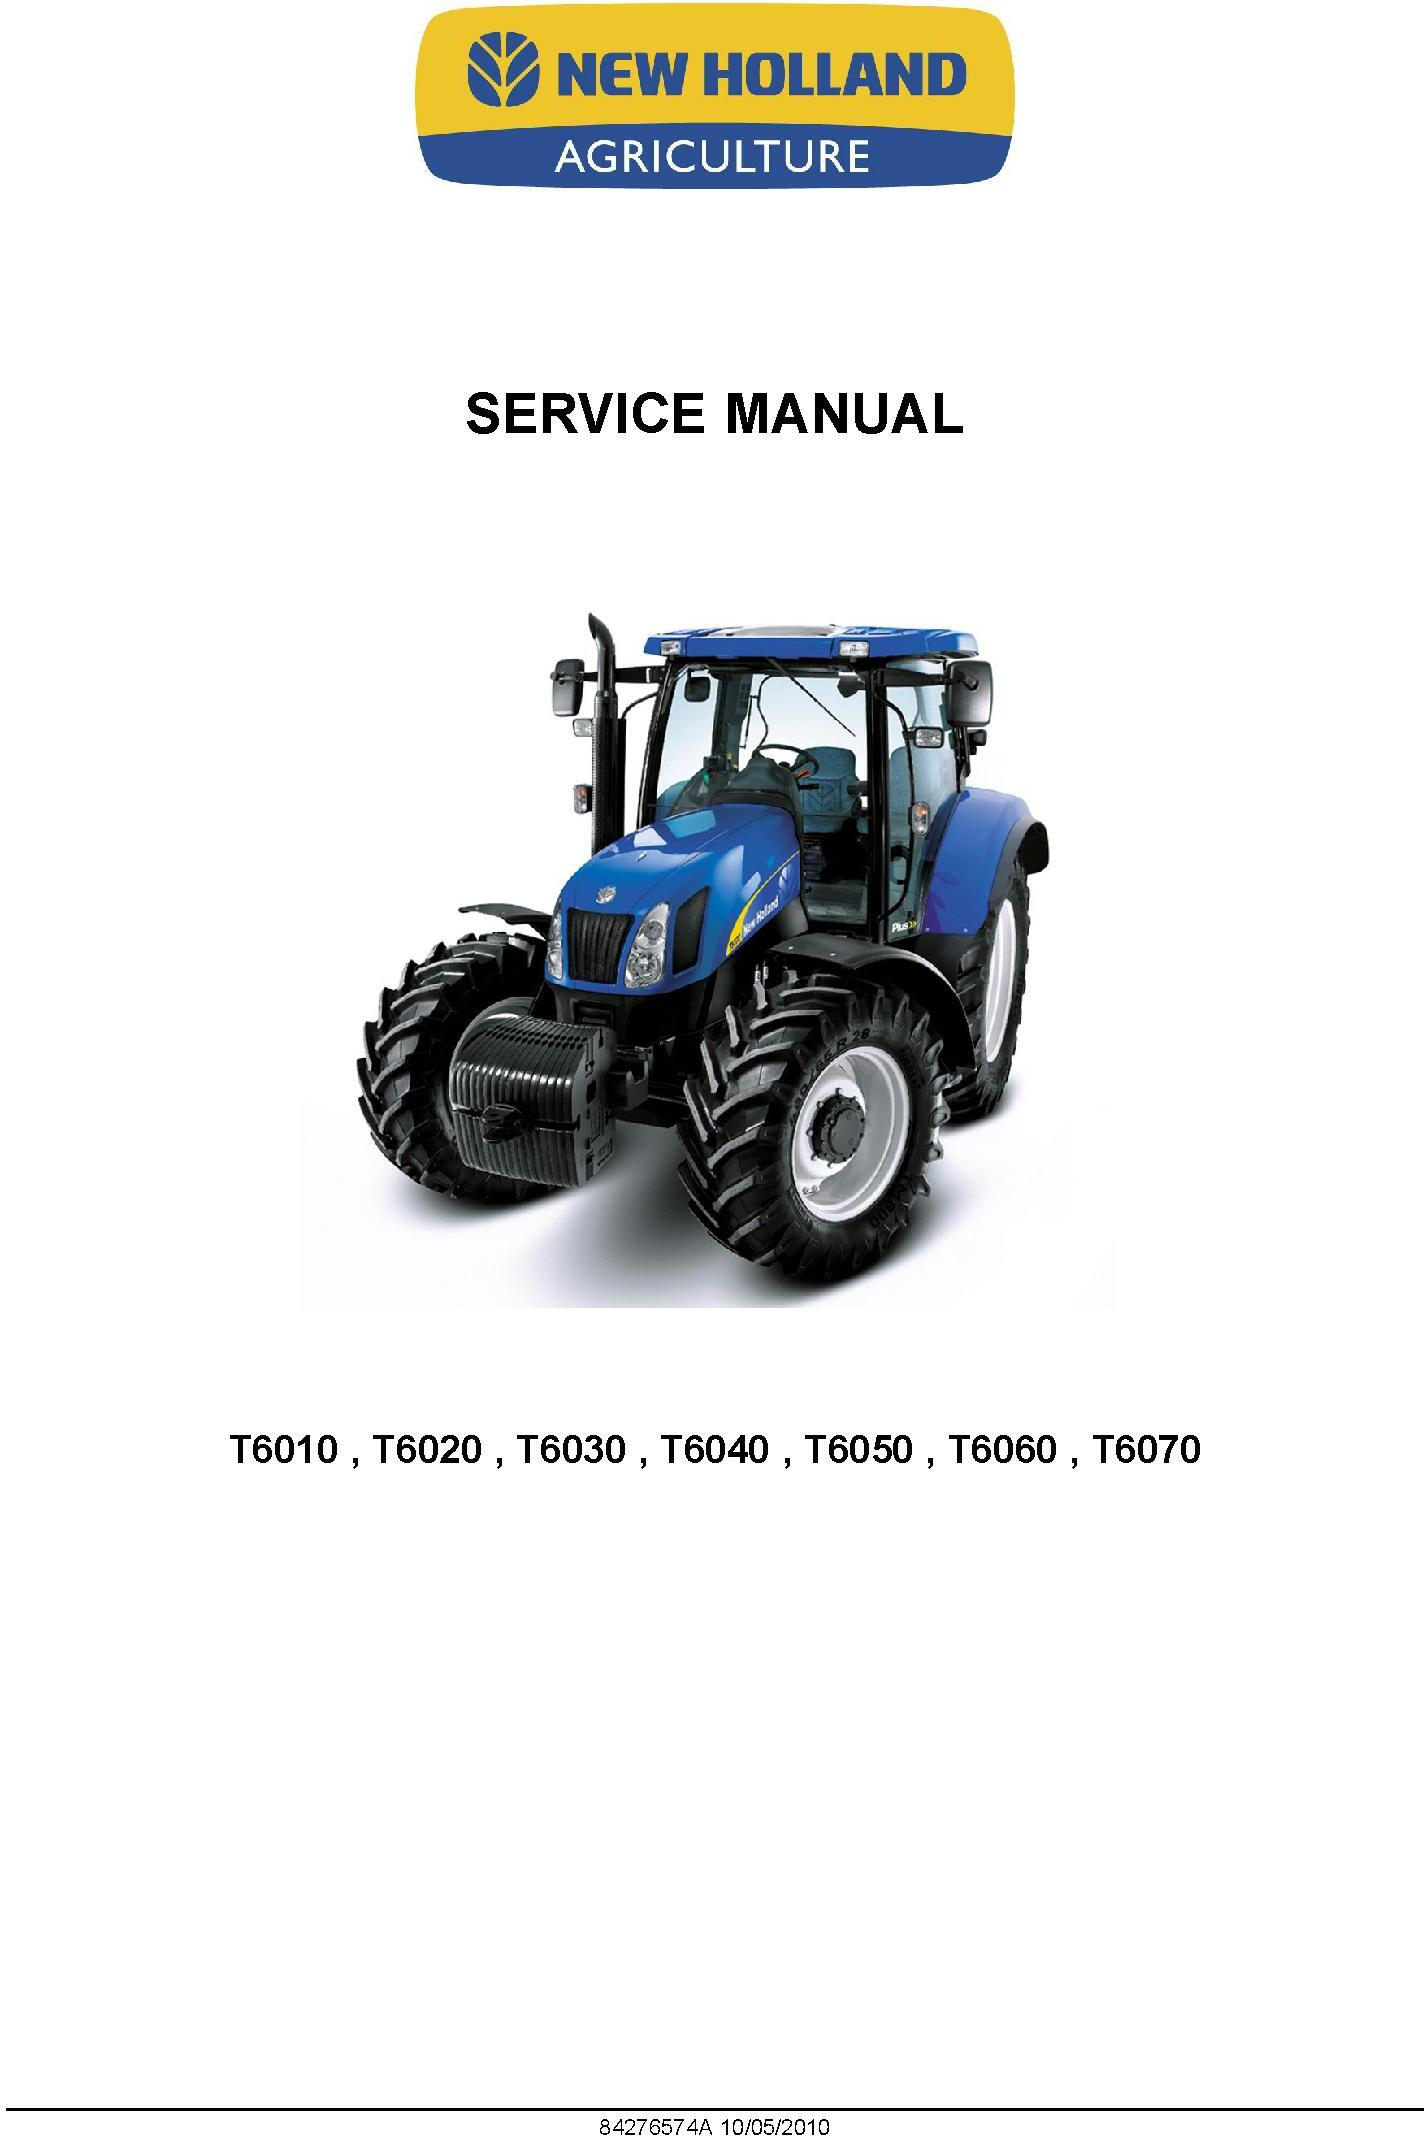 New Holland T6010, T6020, T6030, T6040, T6050, T6060, T6070 Agricultural Tractor Service Manual - 19563